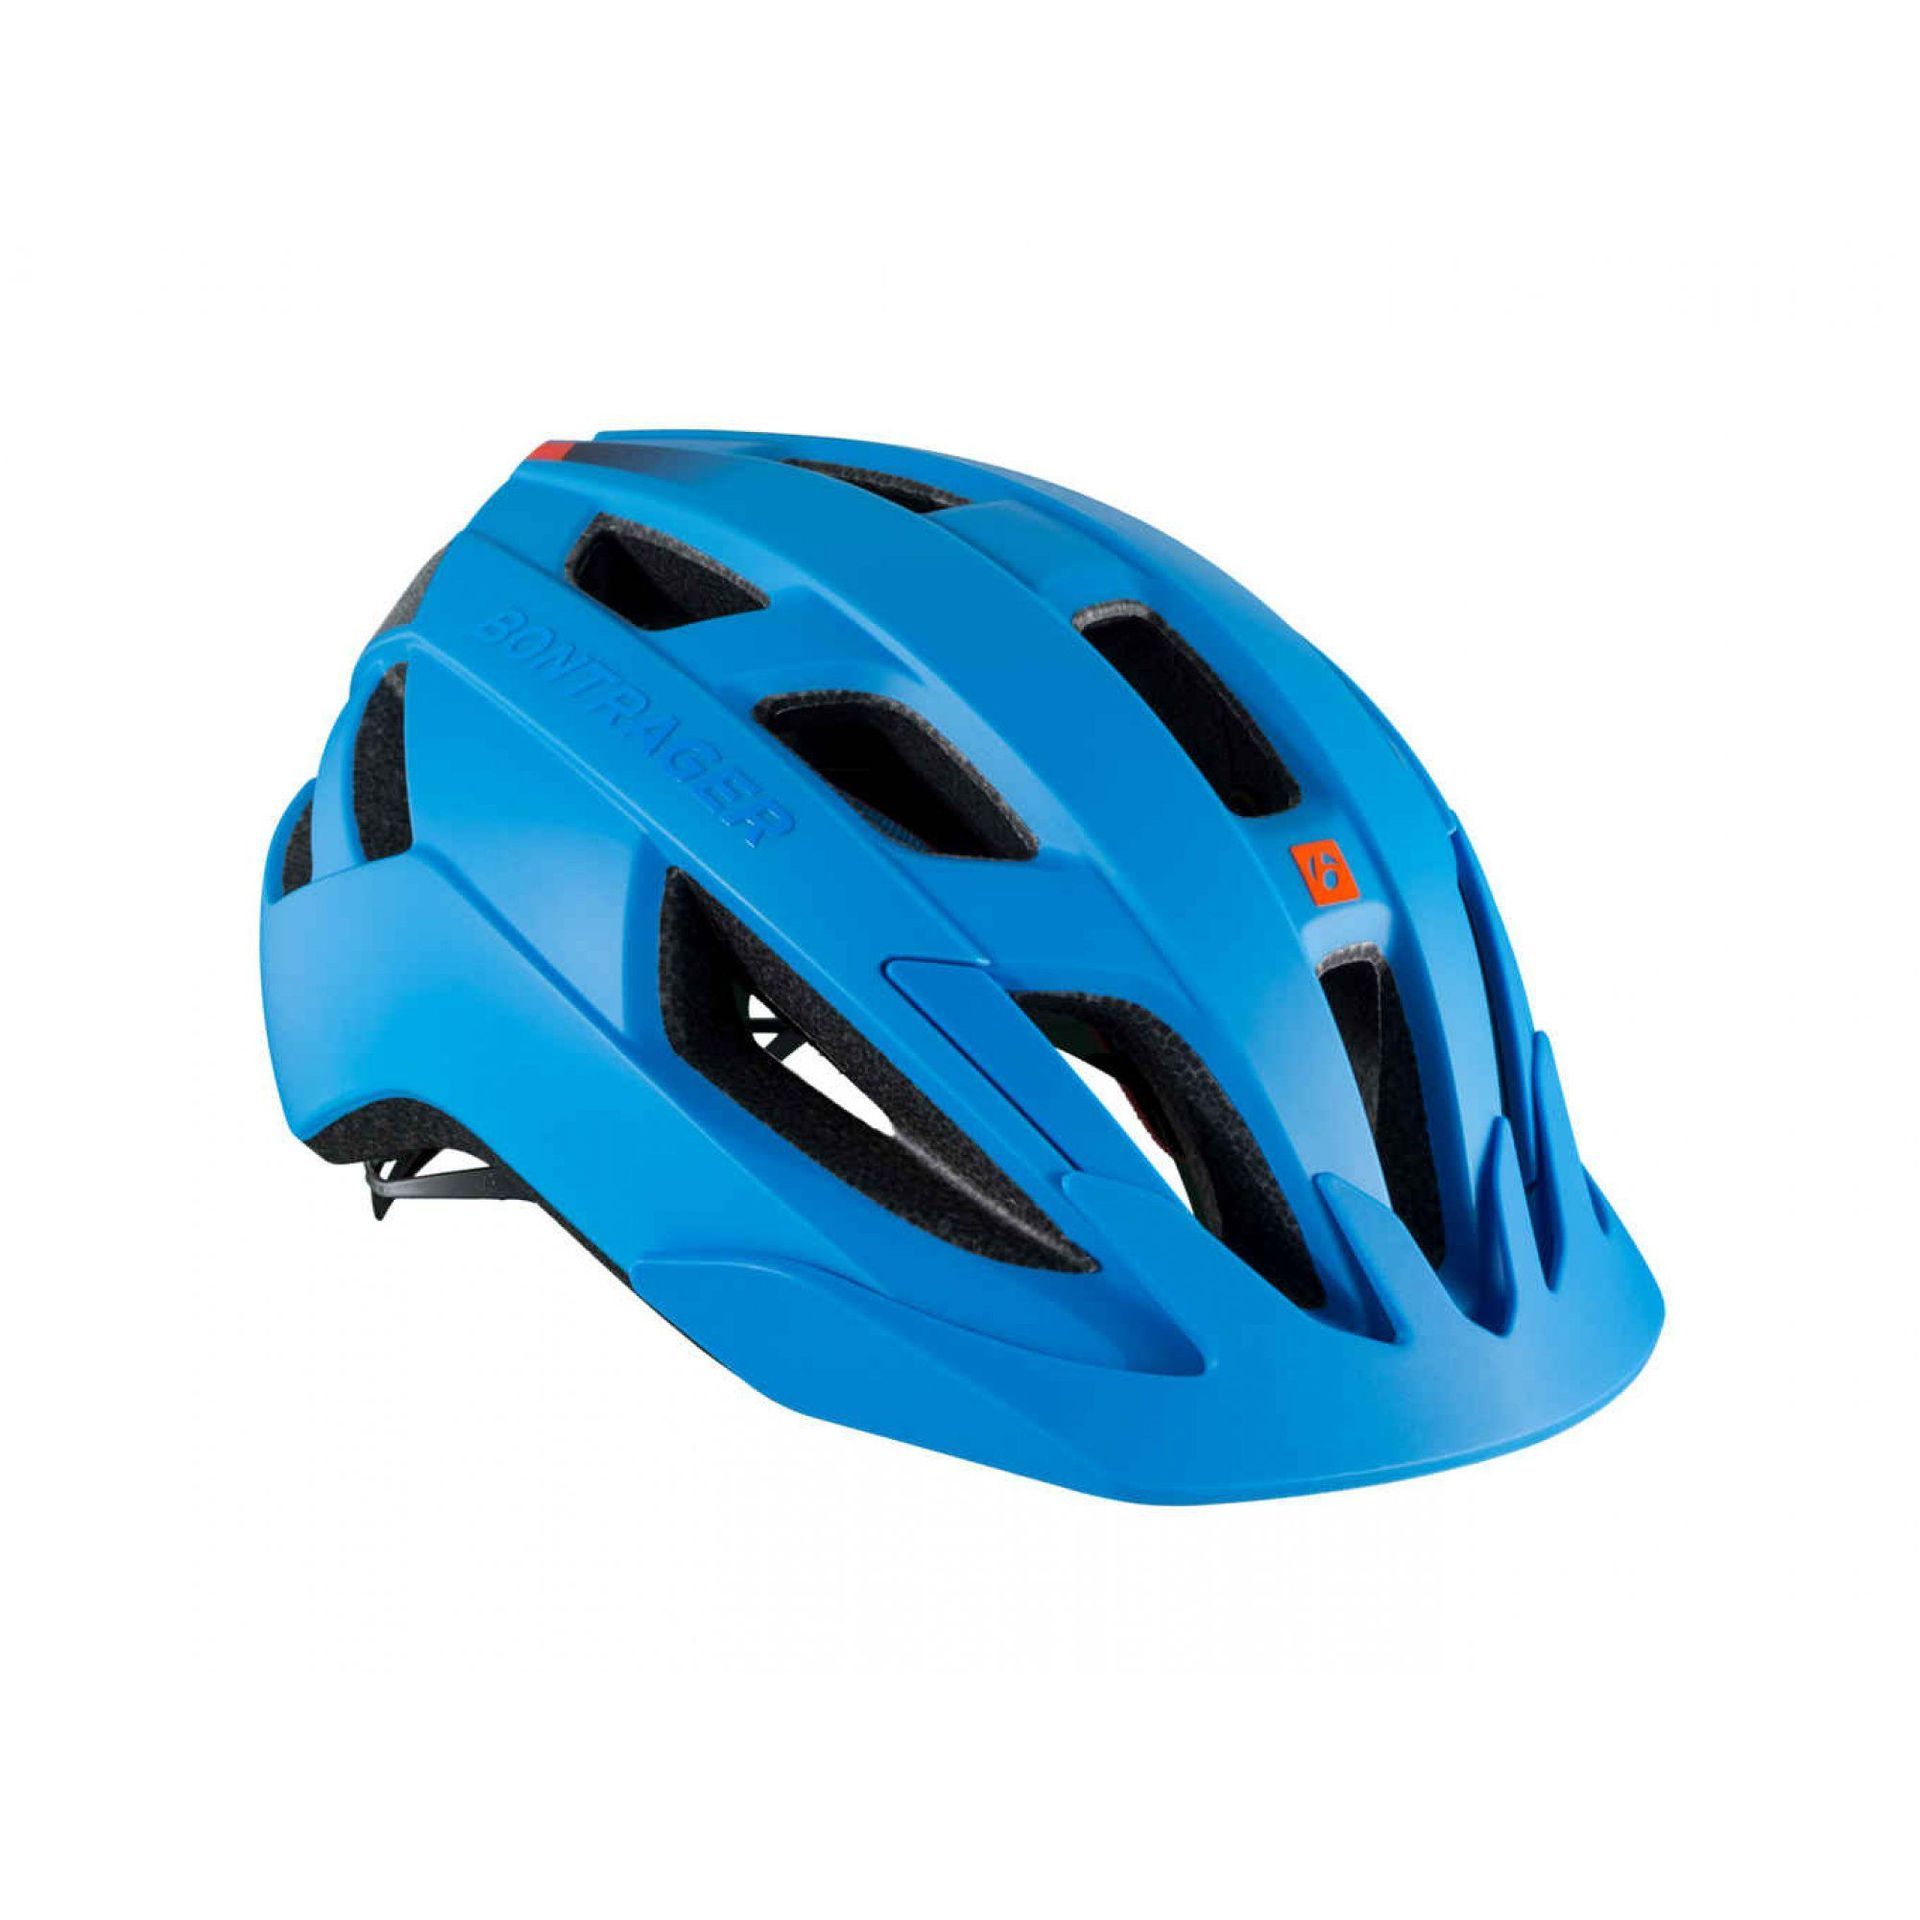 KASK ROWEROWY BONTRAGER SOLSTICE MIPS YOUTH 552071 1